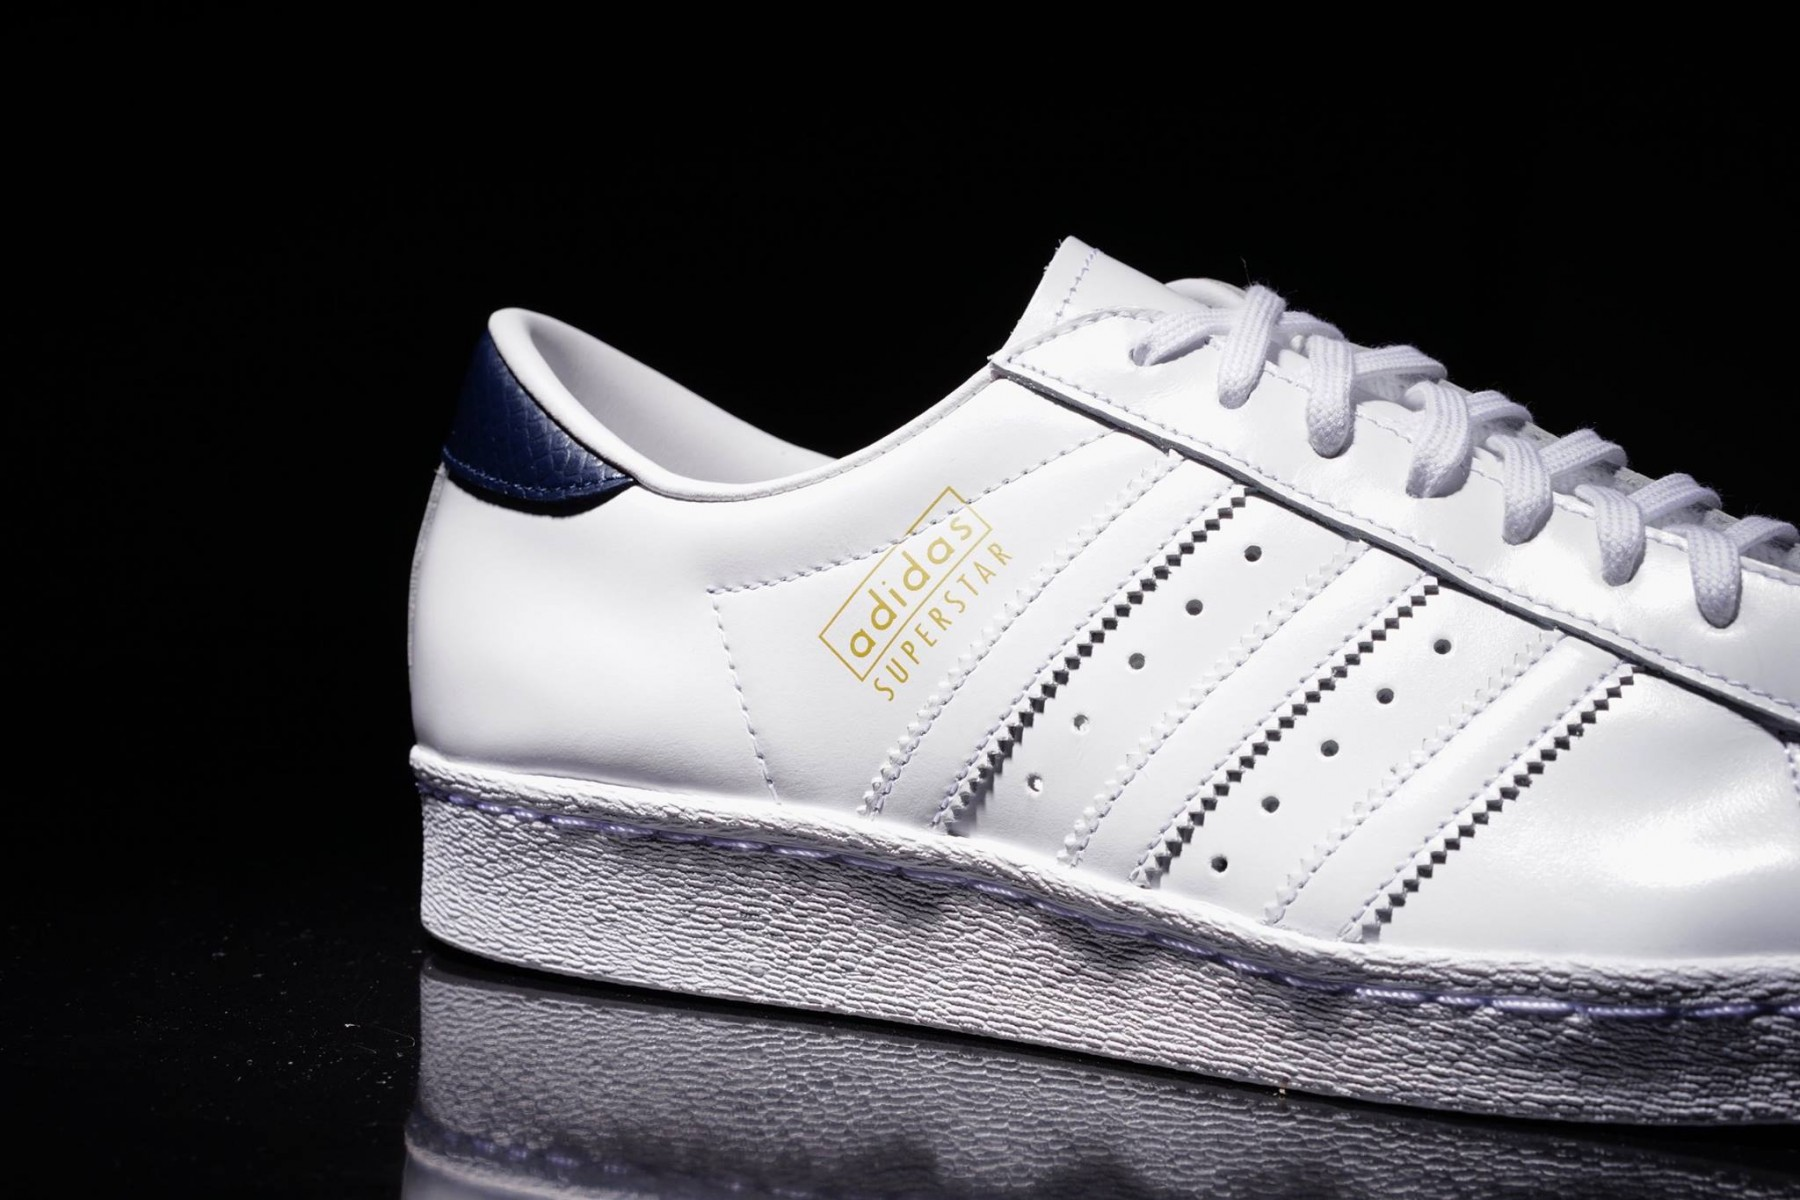 beauty-youth-adidas-superstar-80v-2-1800x1200